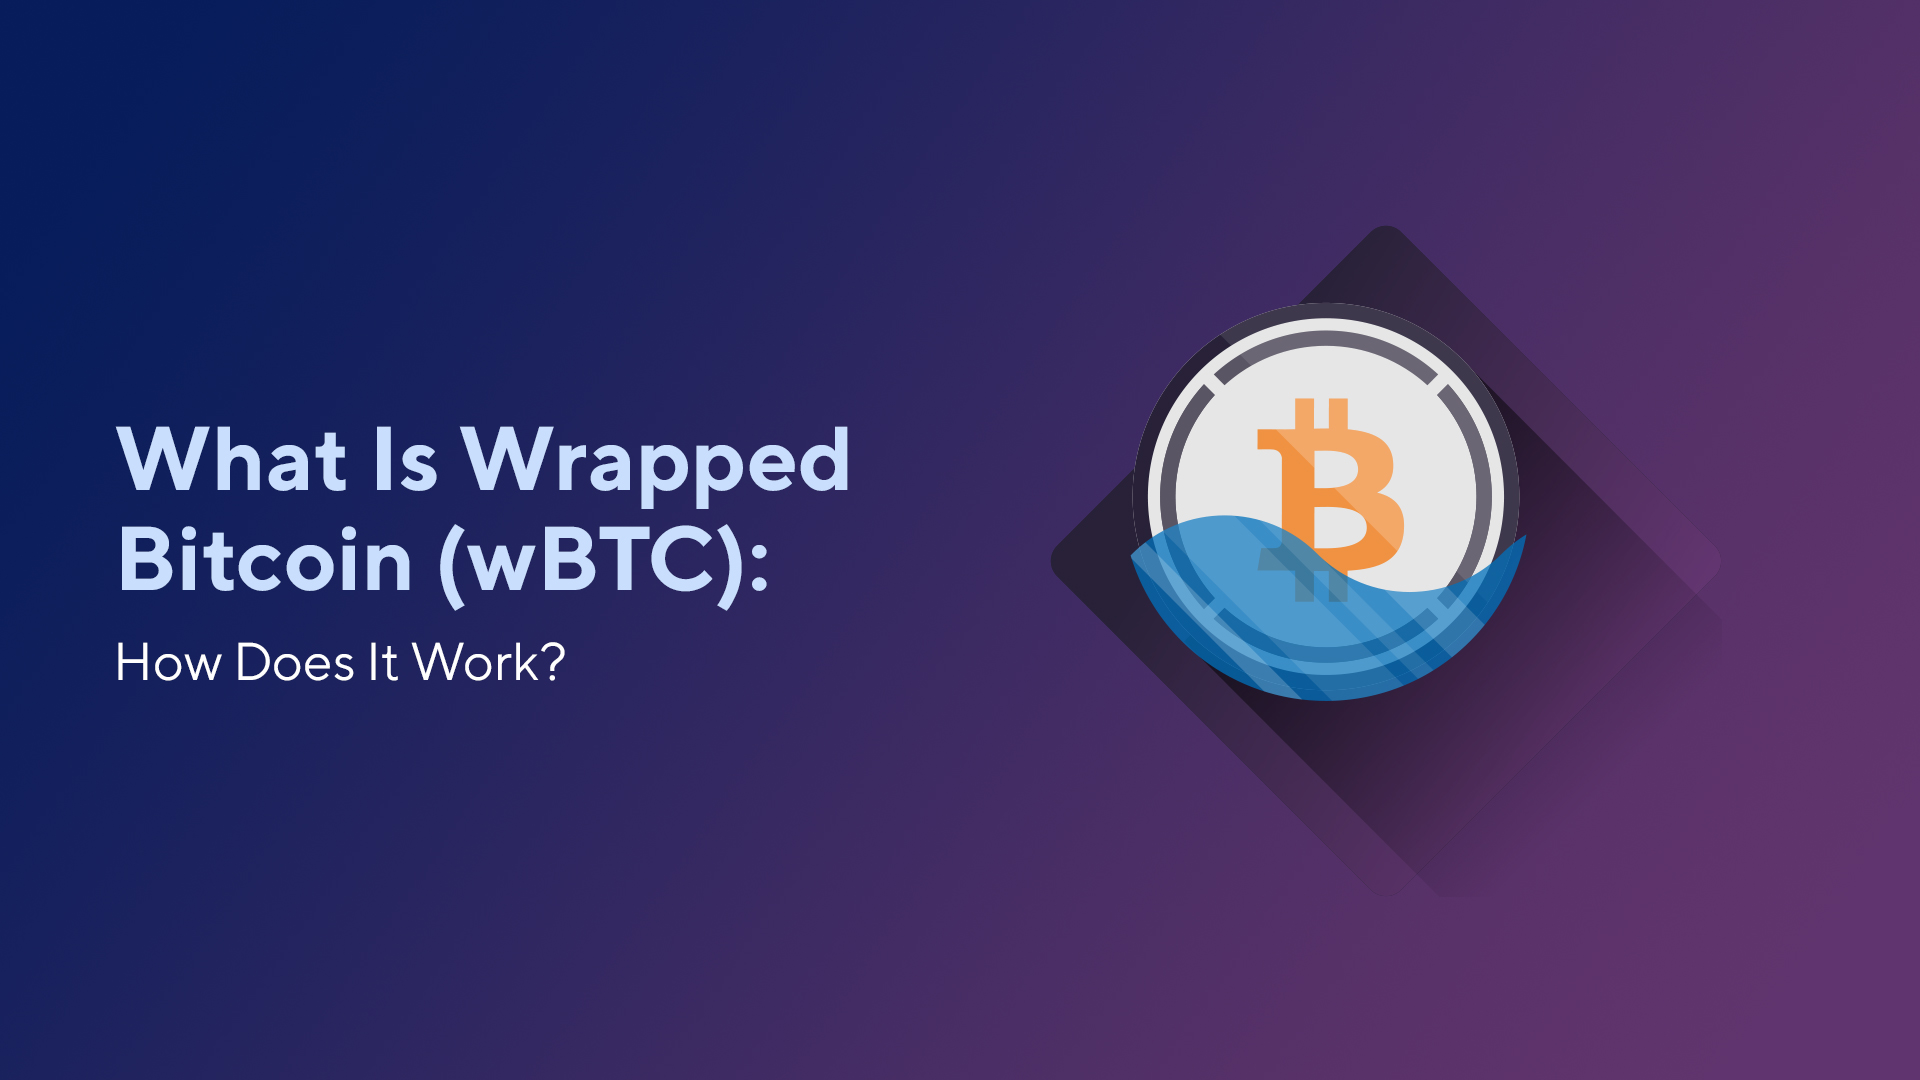 What Is Wrapped Bitcoin (wBTC): How Does It Work?